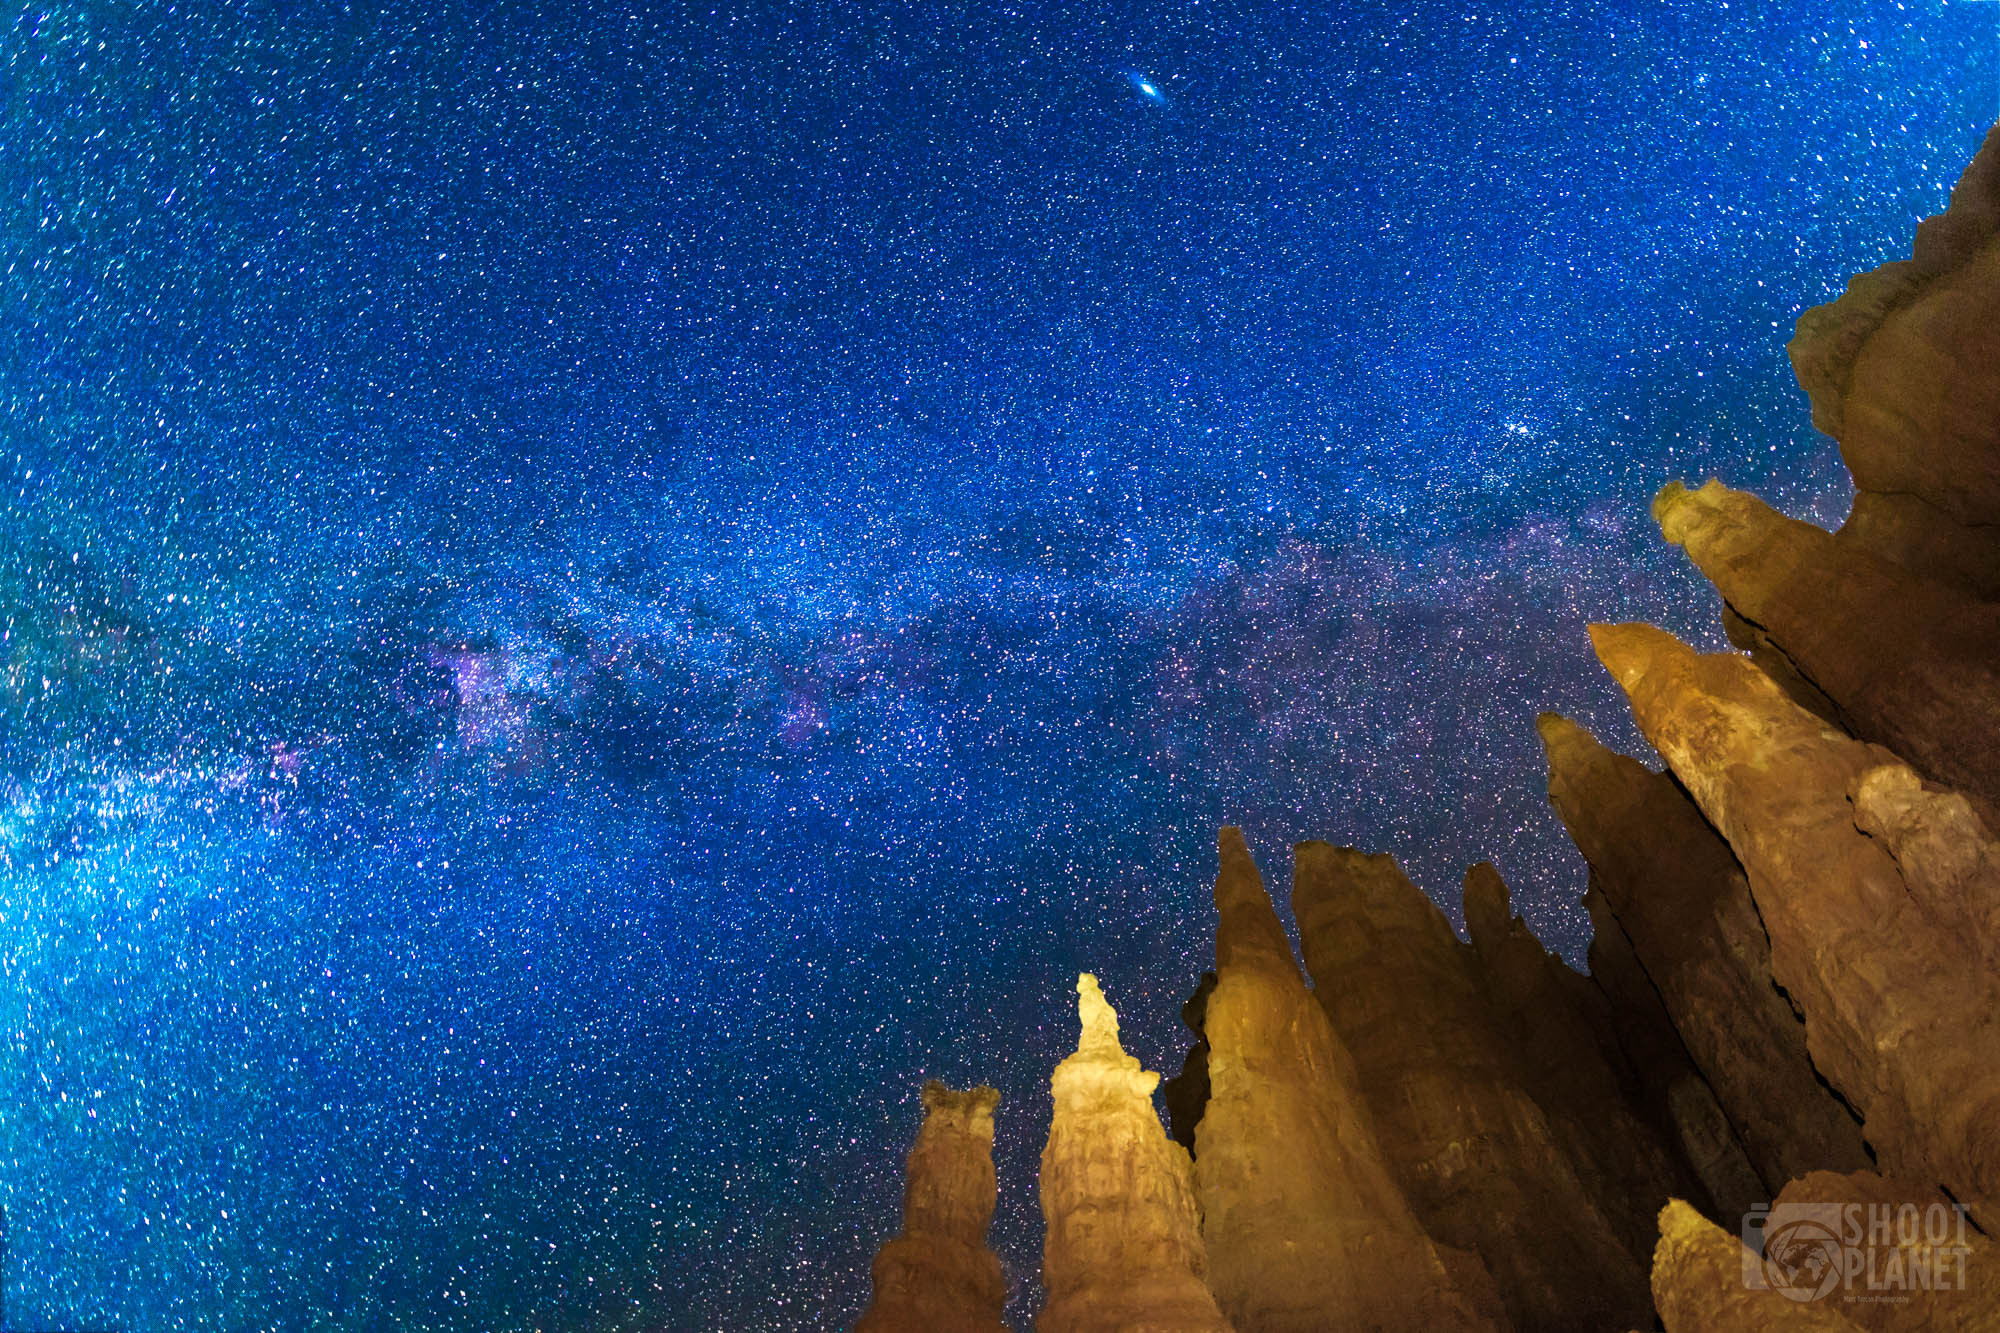 Bryce Canyon Milky Way and lit-up rocks, USA